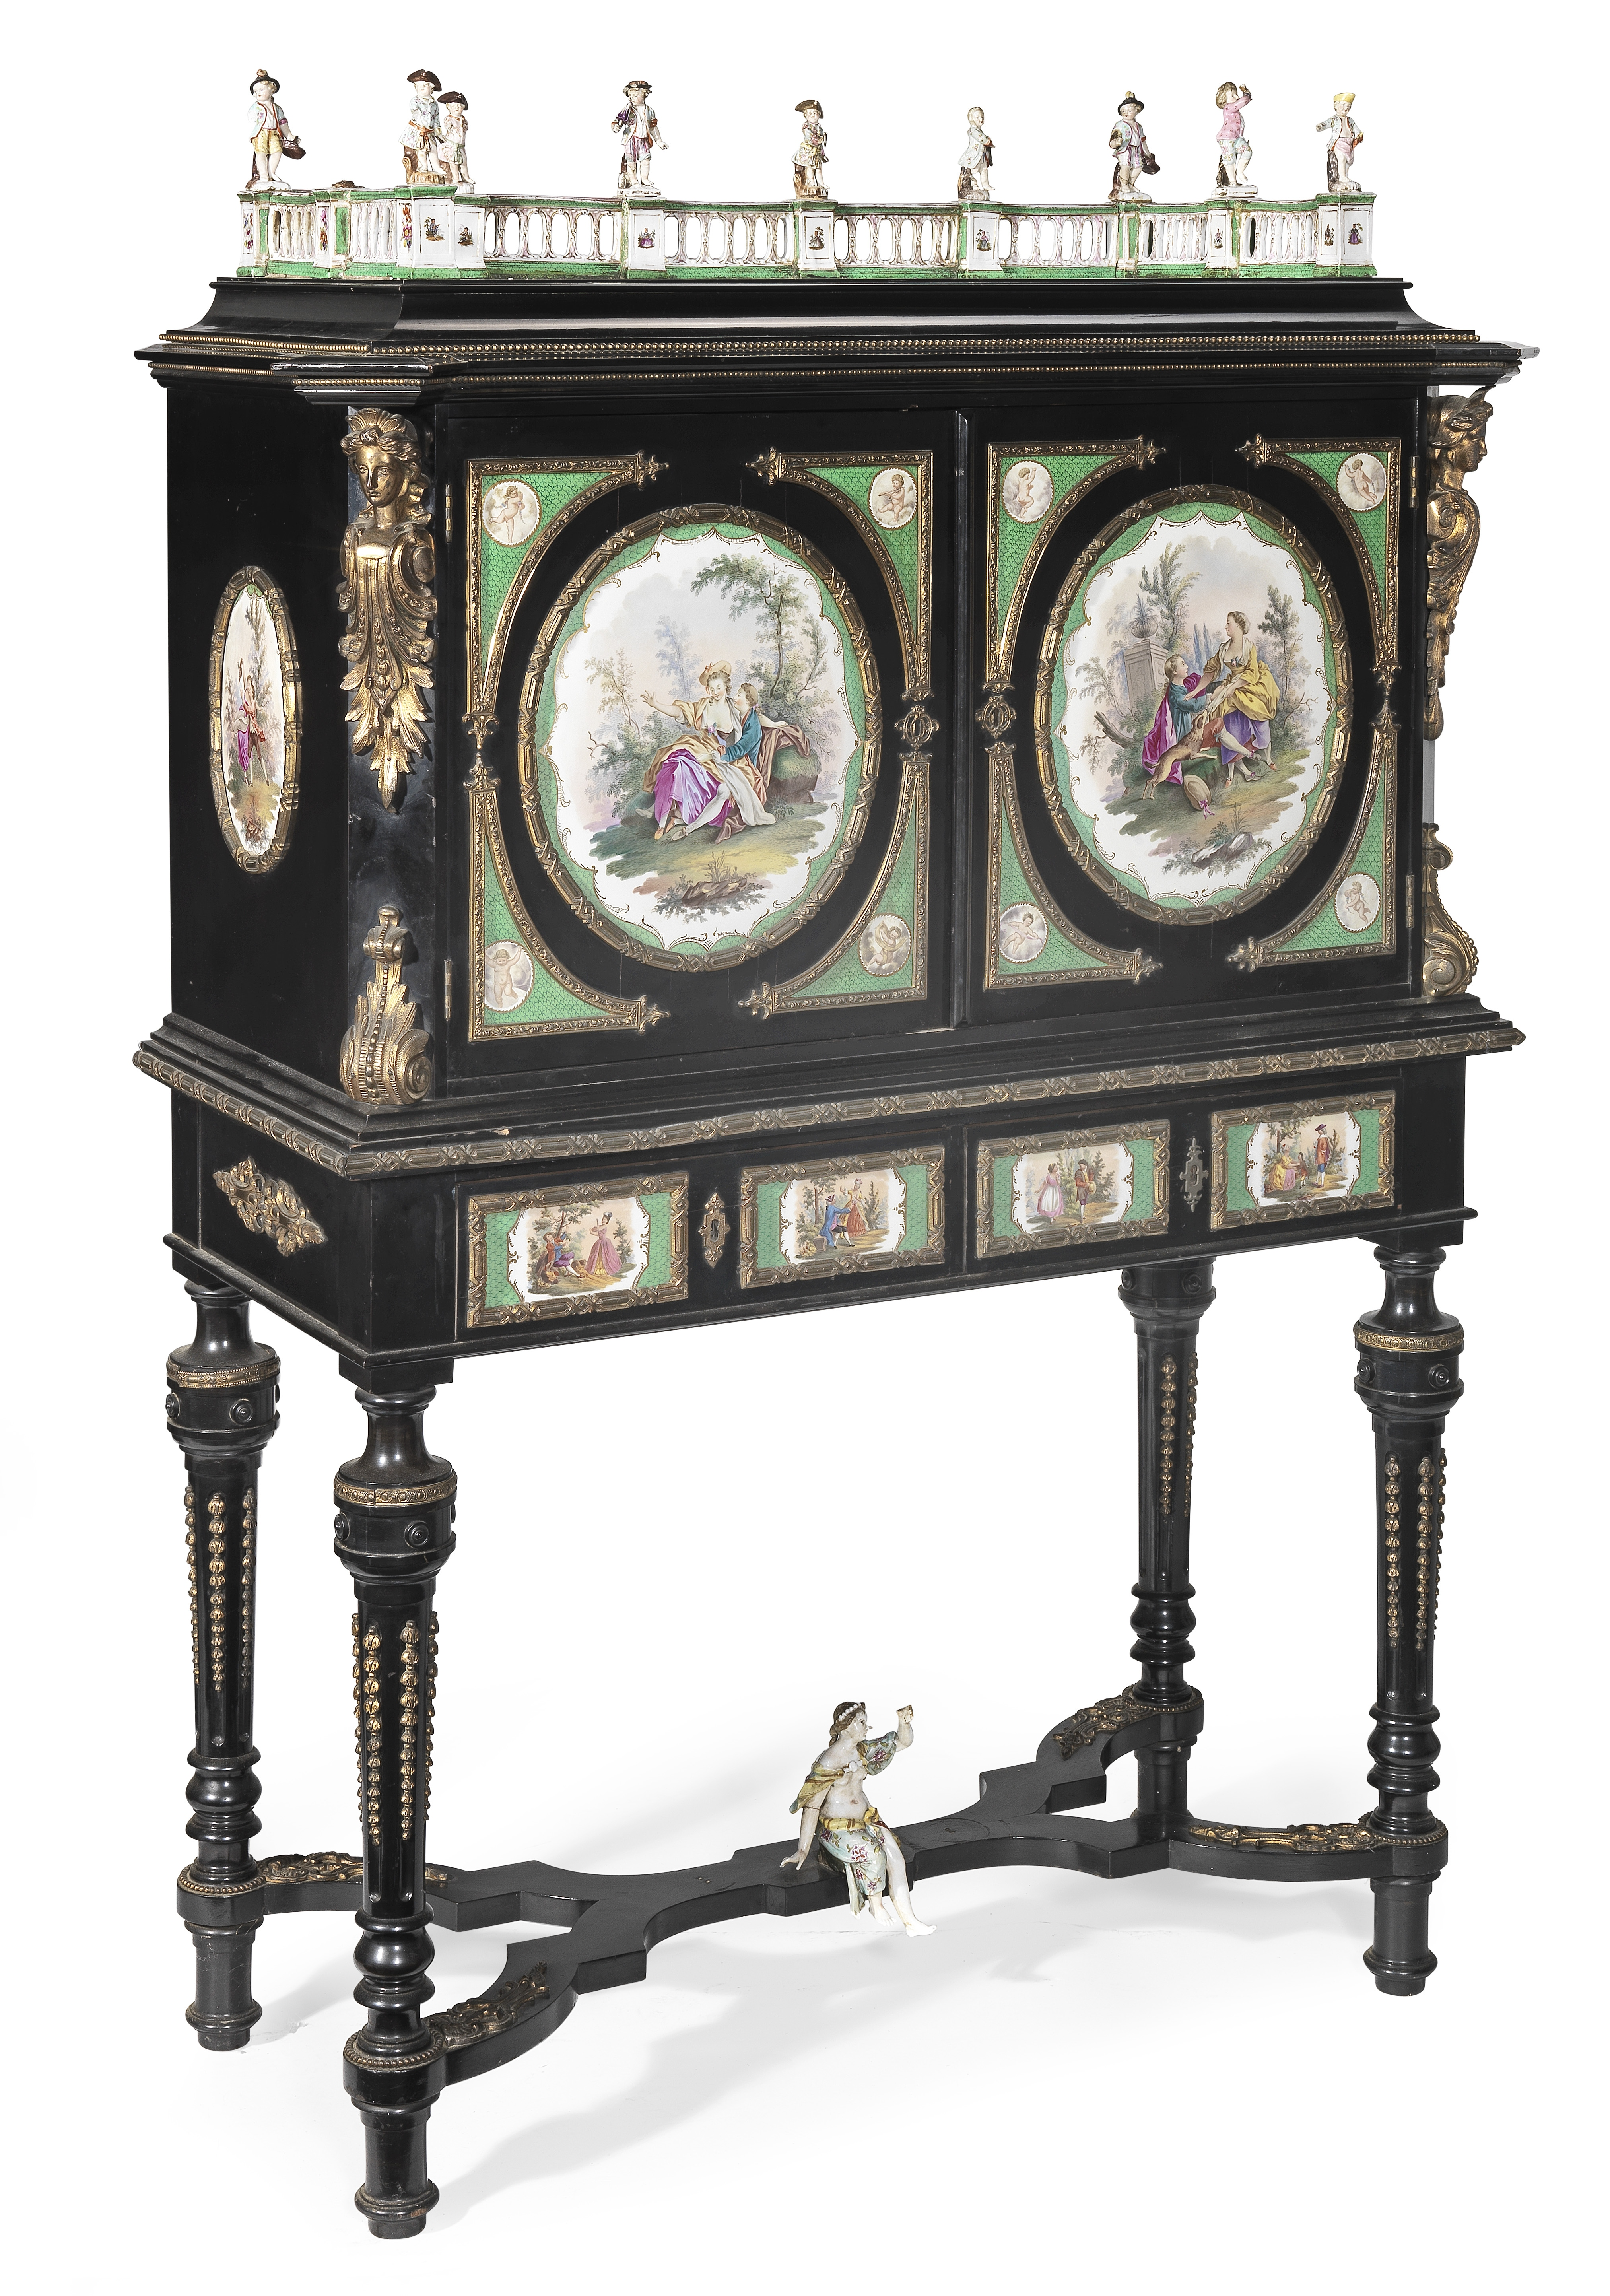 Lot 38 - A pair of German 19th century porcelain and gilt bronze mounted ebonised cabinets on stands (2)